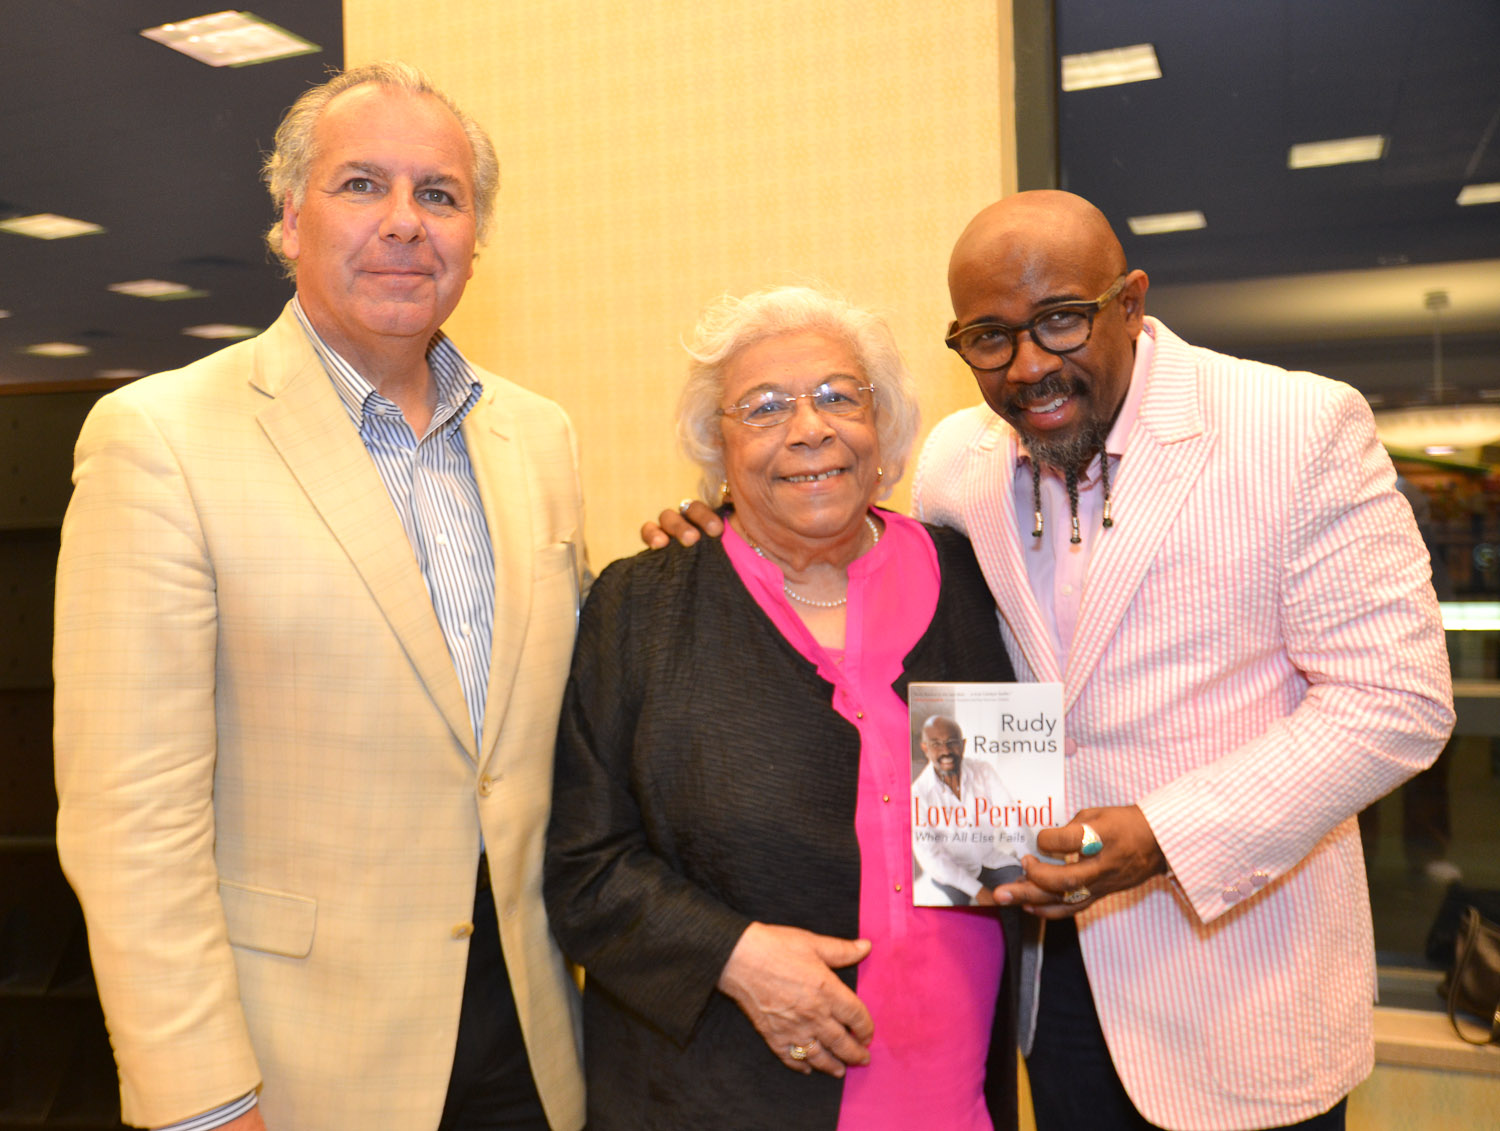 Paster Rudy book signing -0432.jpg